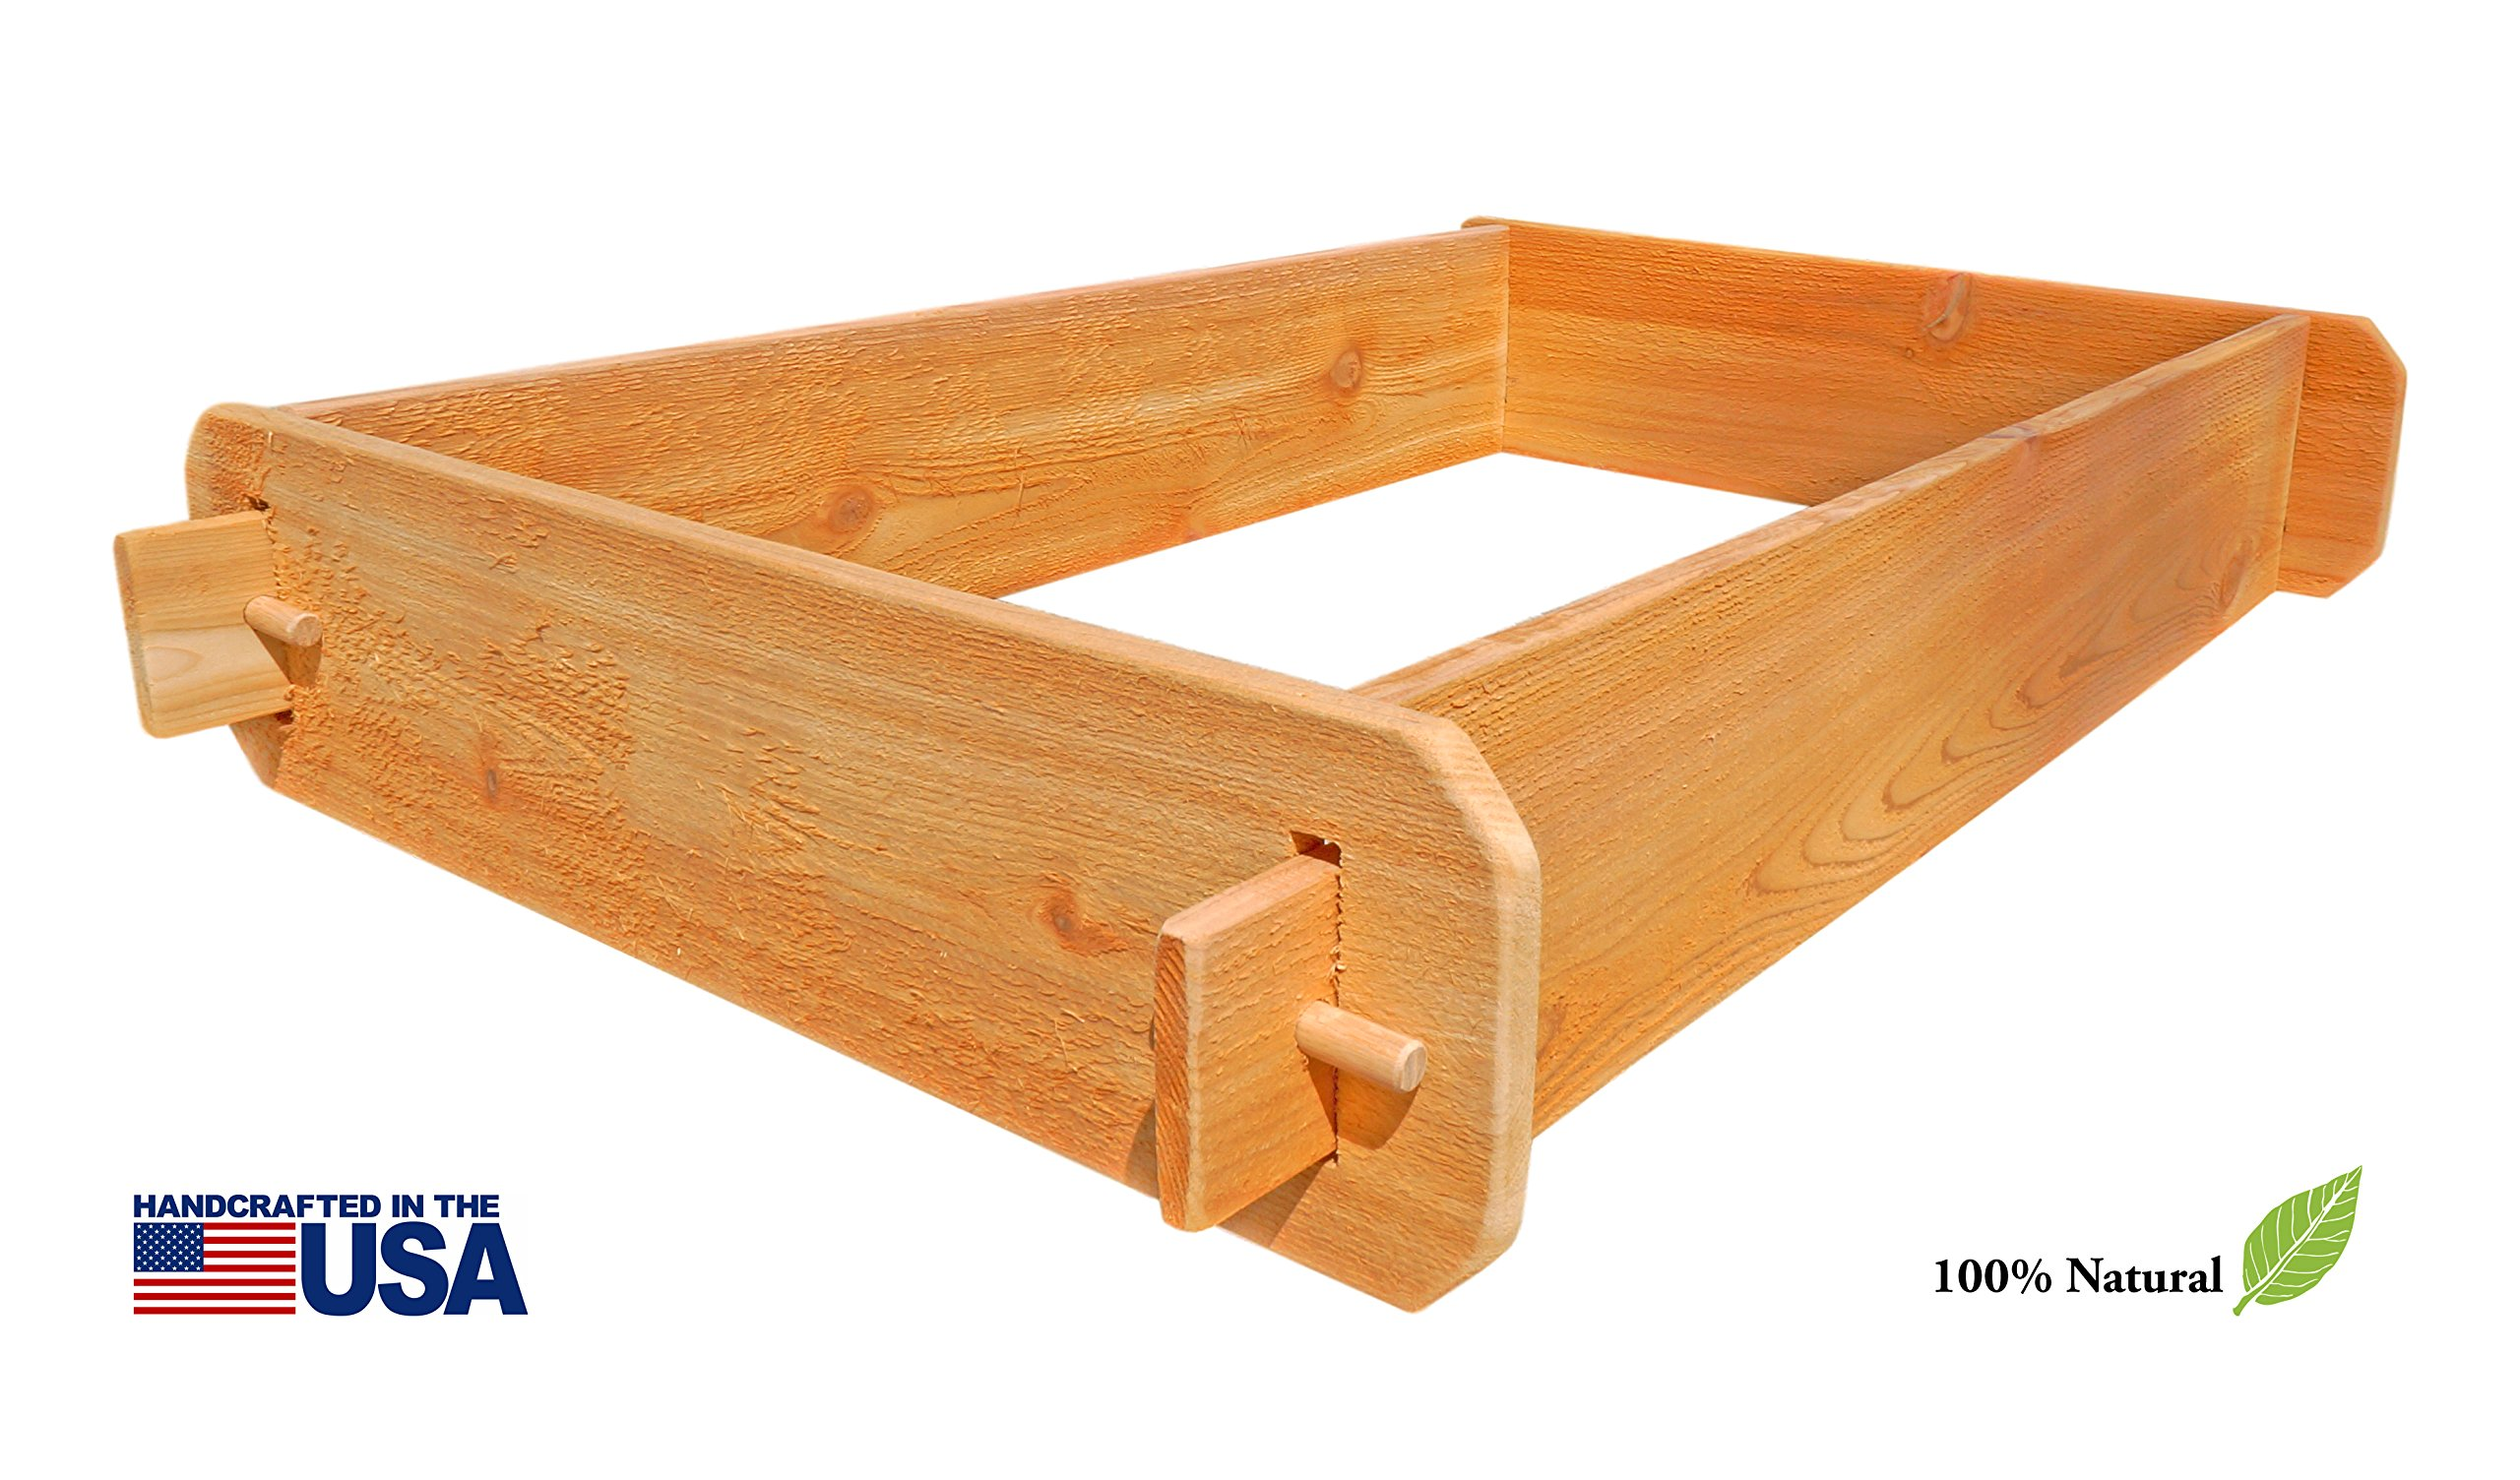 Timberlane Gardens Raised Bed Kit 2x3 All Natural Western Red Cedar Handcrafted with Mortise and Tenon Joinery 2Feet x 3 Feet